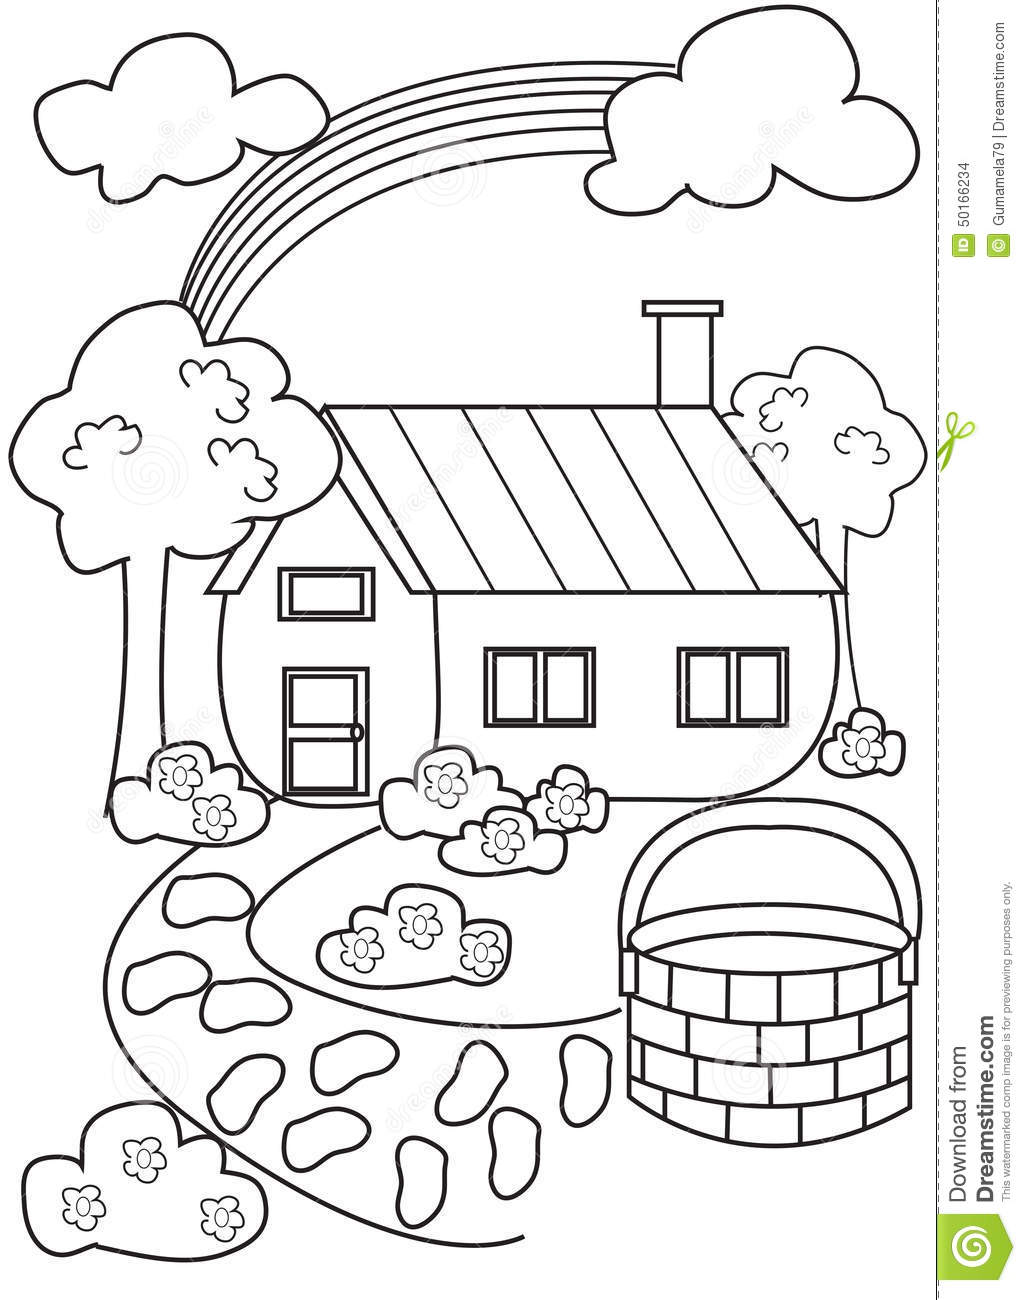 House Coloring Pages For Kids At Getdrawings